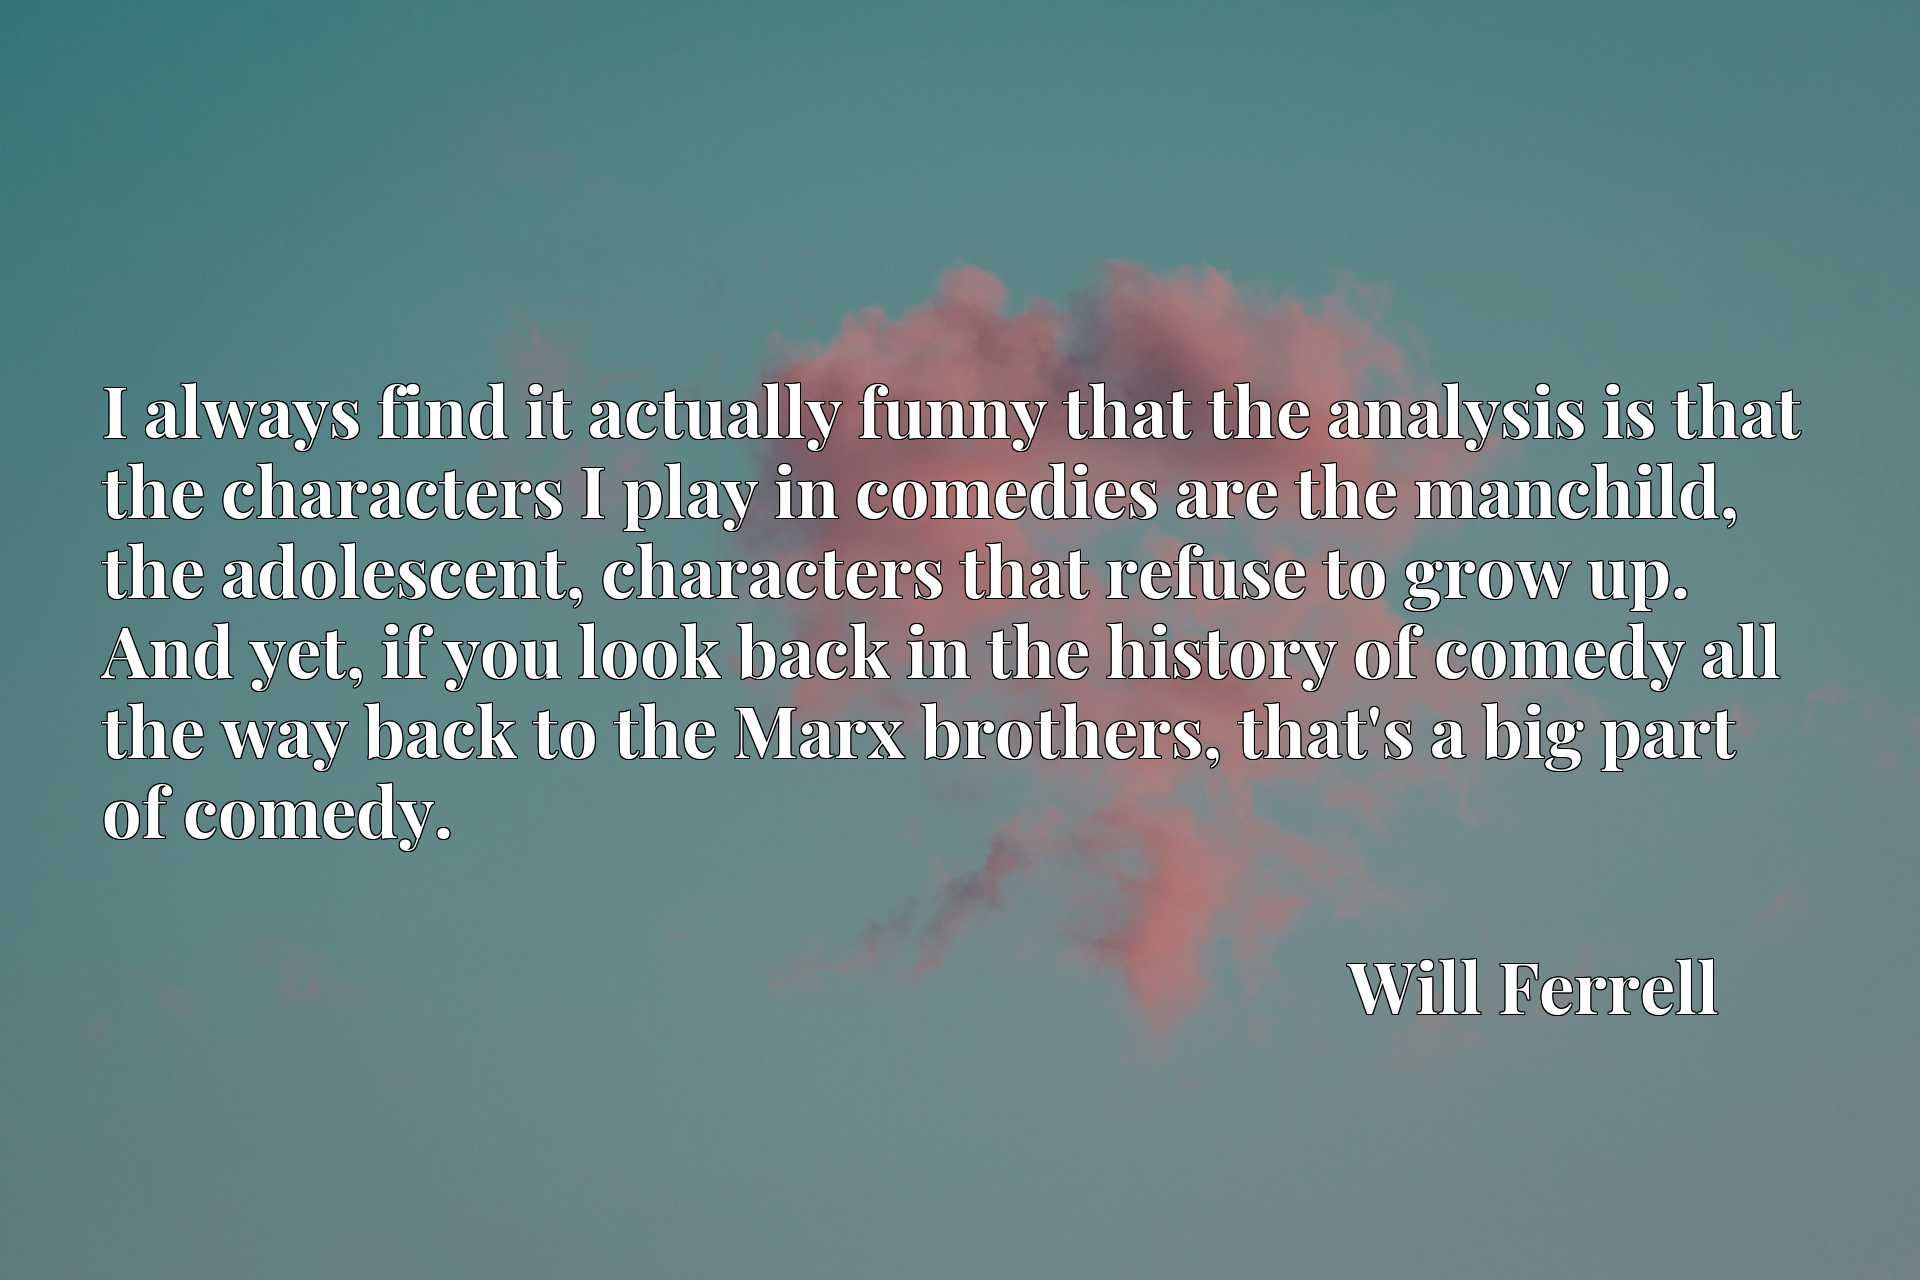 I always find it actually funny that the analysis is that the characters I play in comedies are the manchild, the adolescent, characters that refuse to grow up. And yet, if you look back in the history of comedy all the way back to the Marx brothers, that's a big part of comedy.